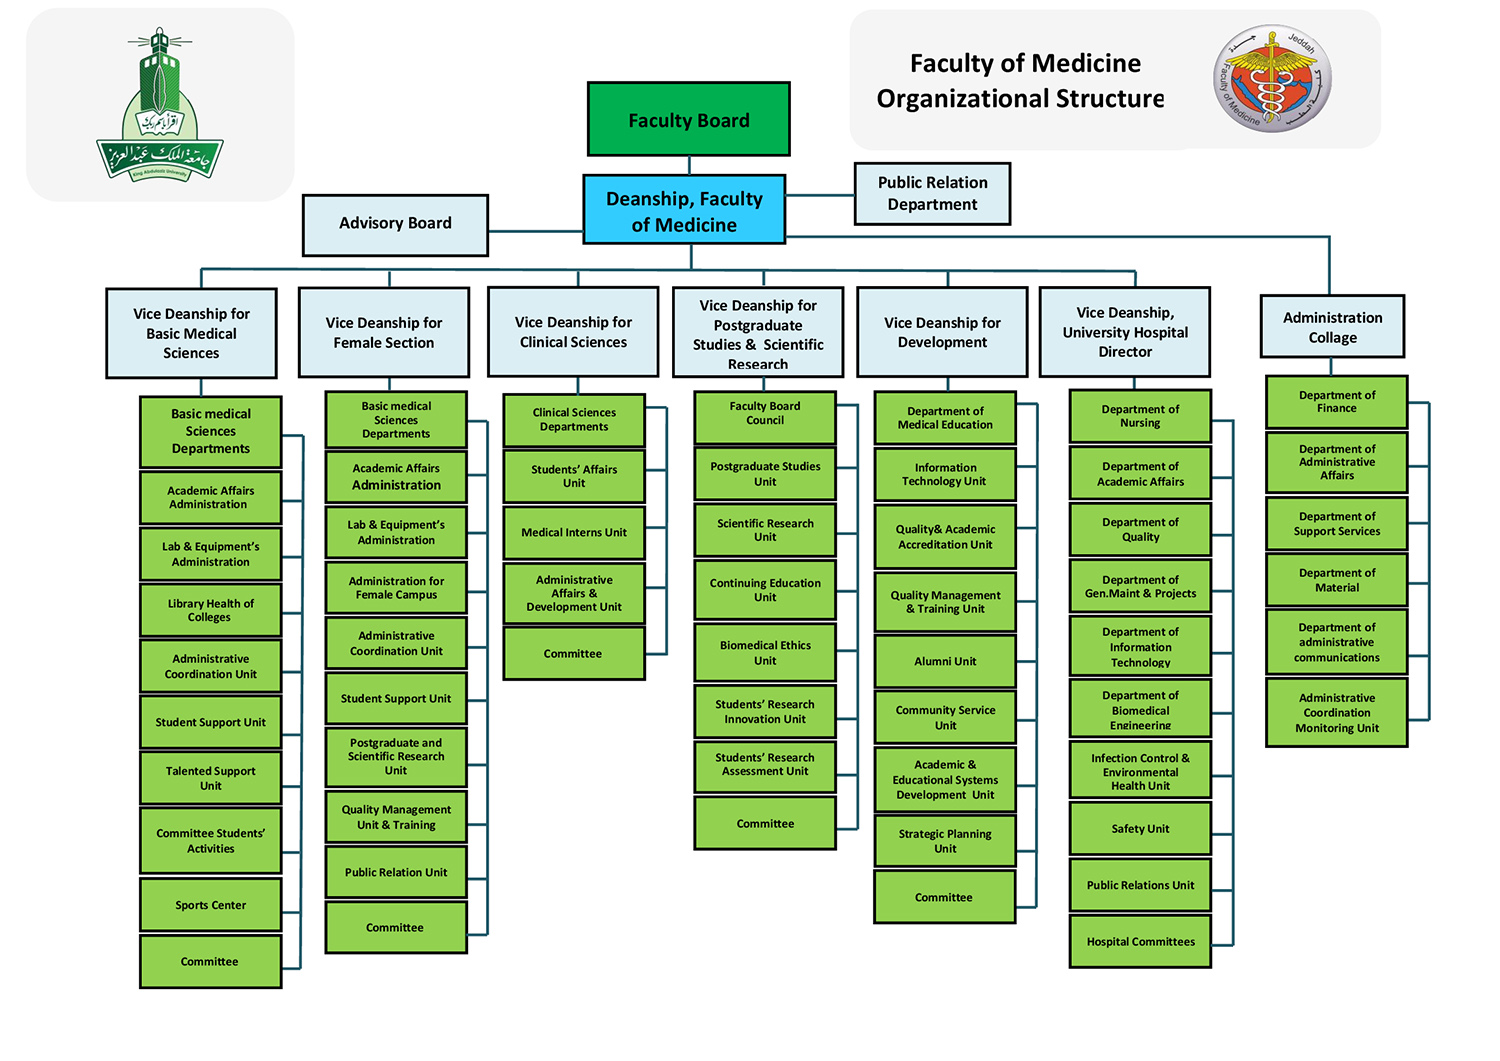 Faculty of Medicine - Organizational Structure